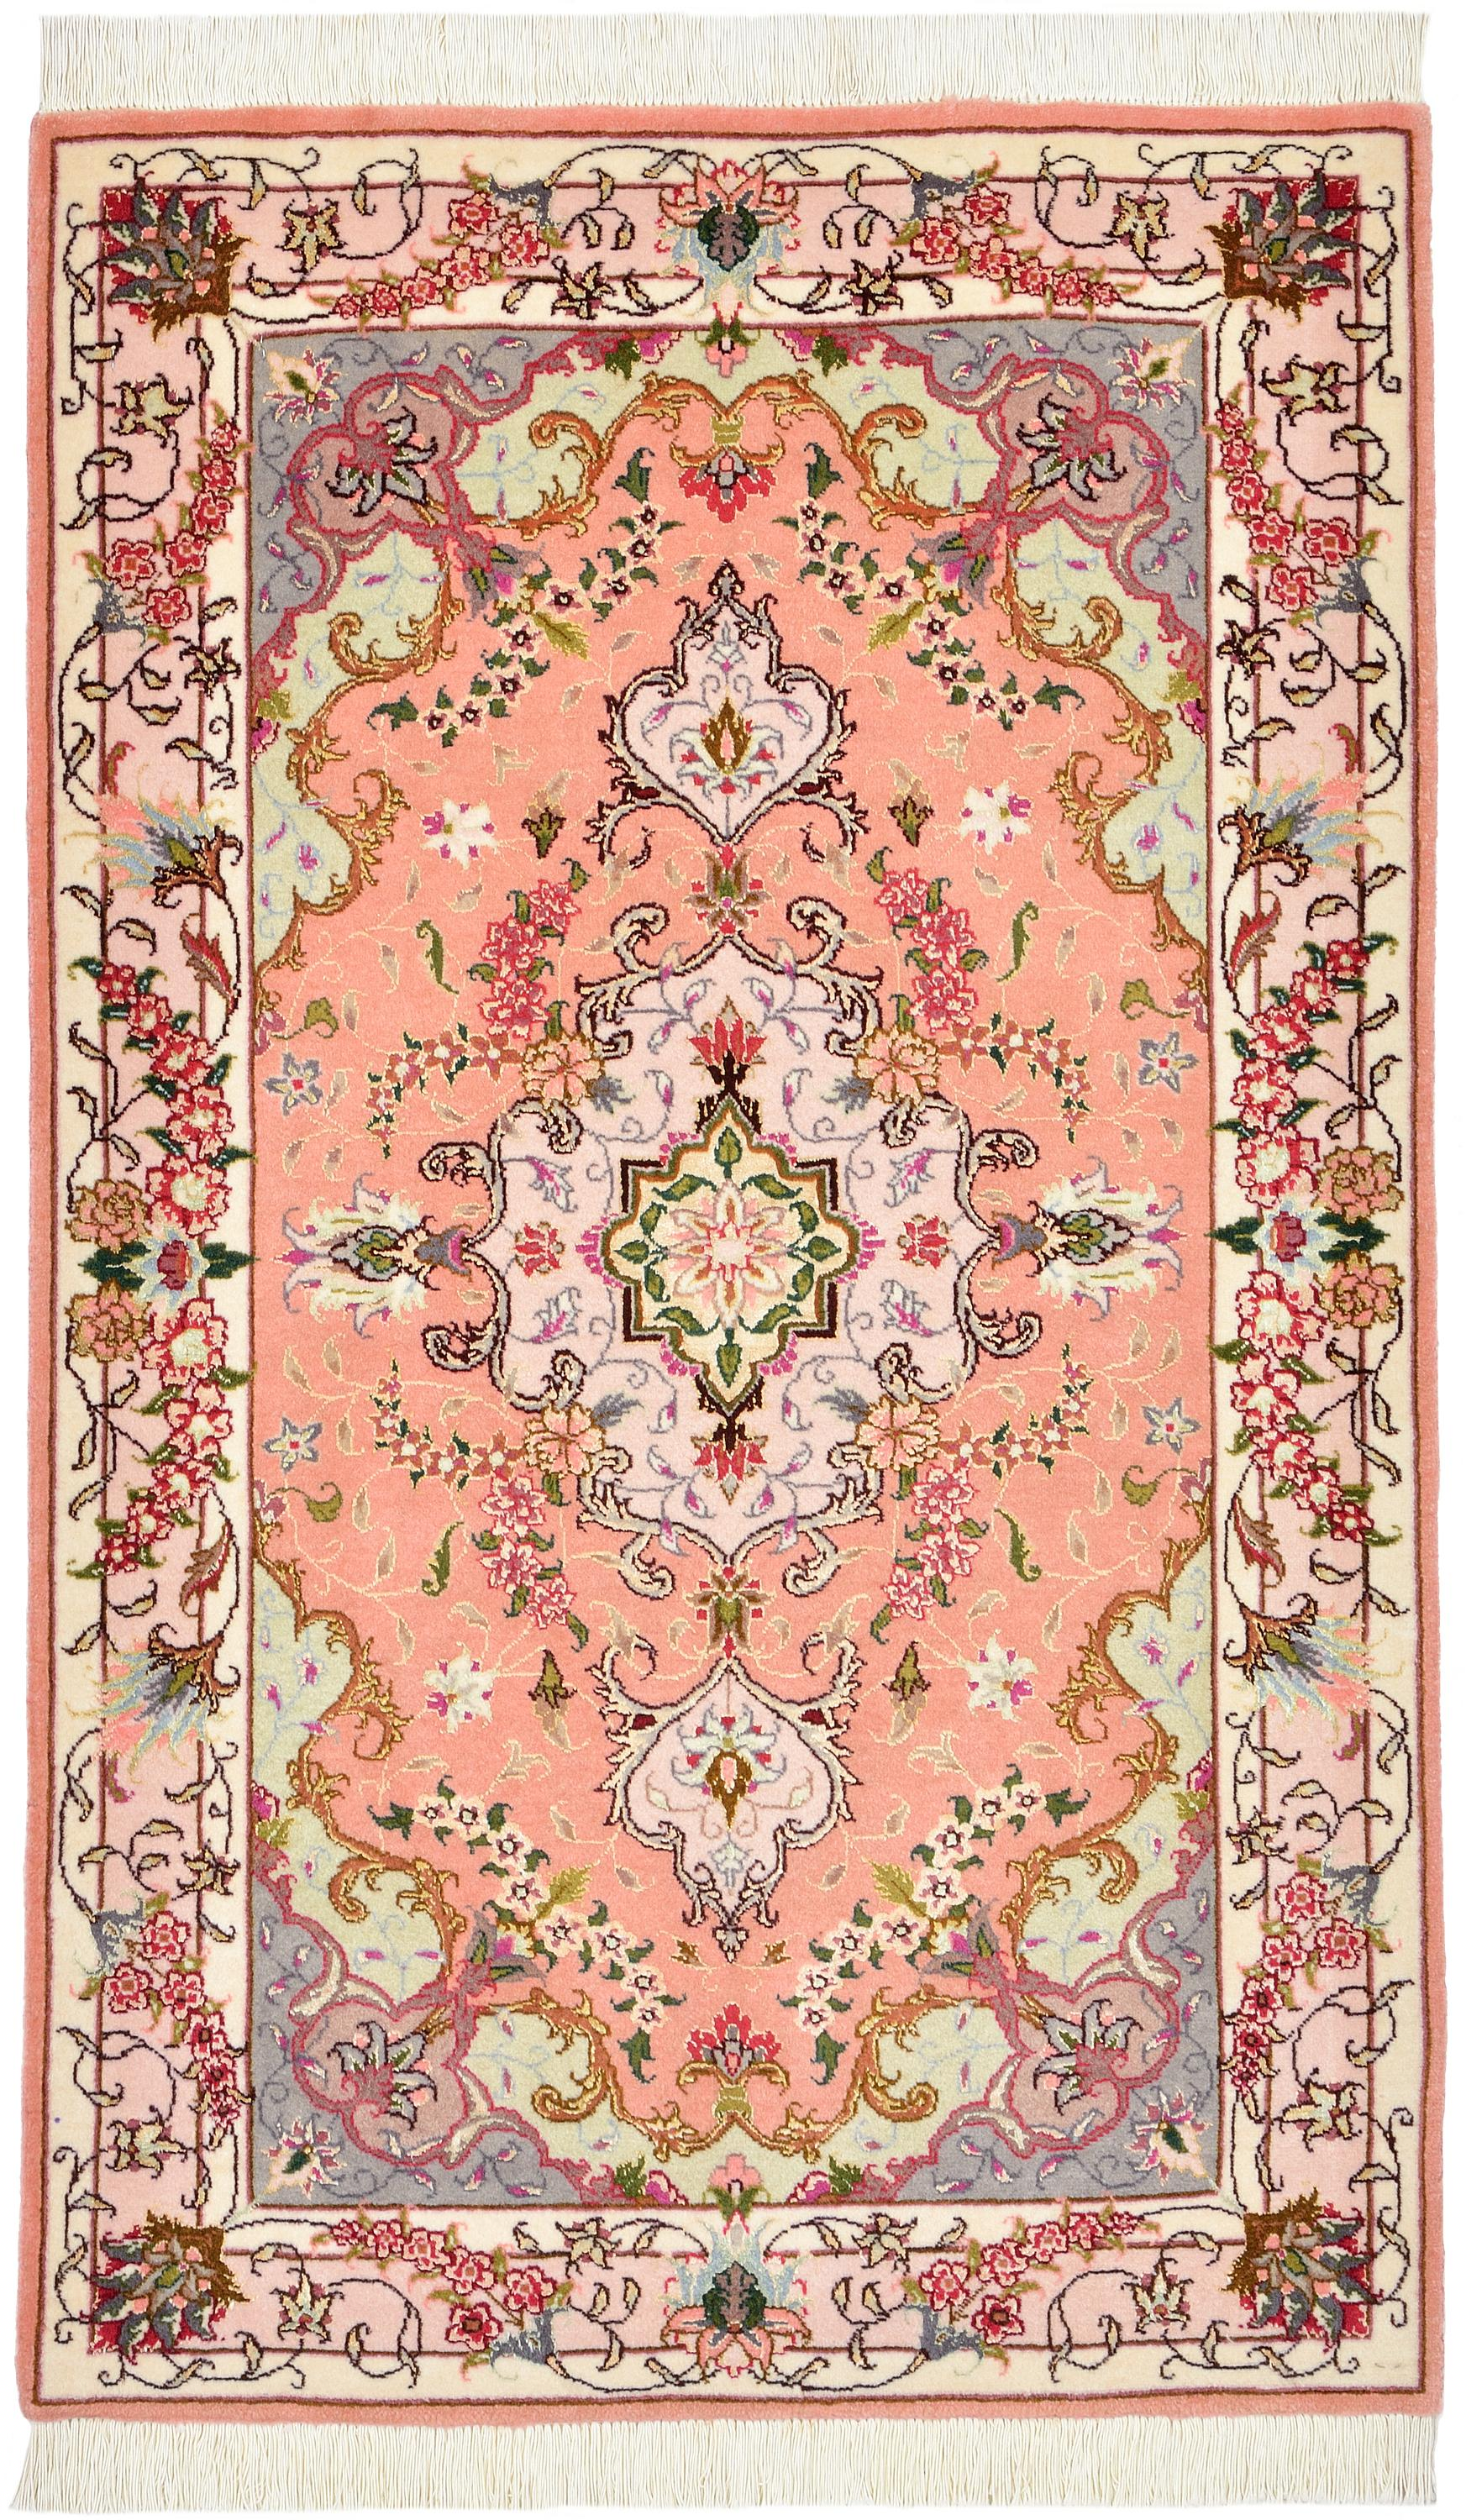 Coral 2 5 X 3 11 Tabriz Persian Rug Handknotted Com